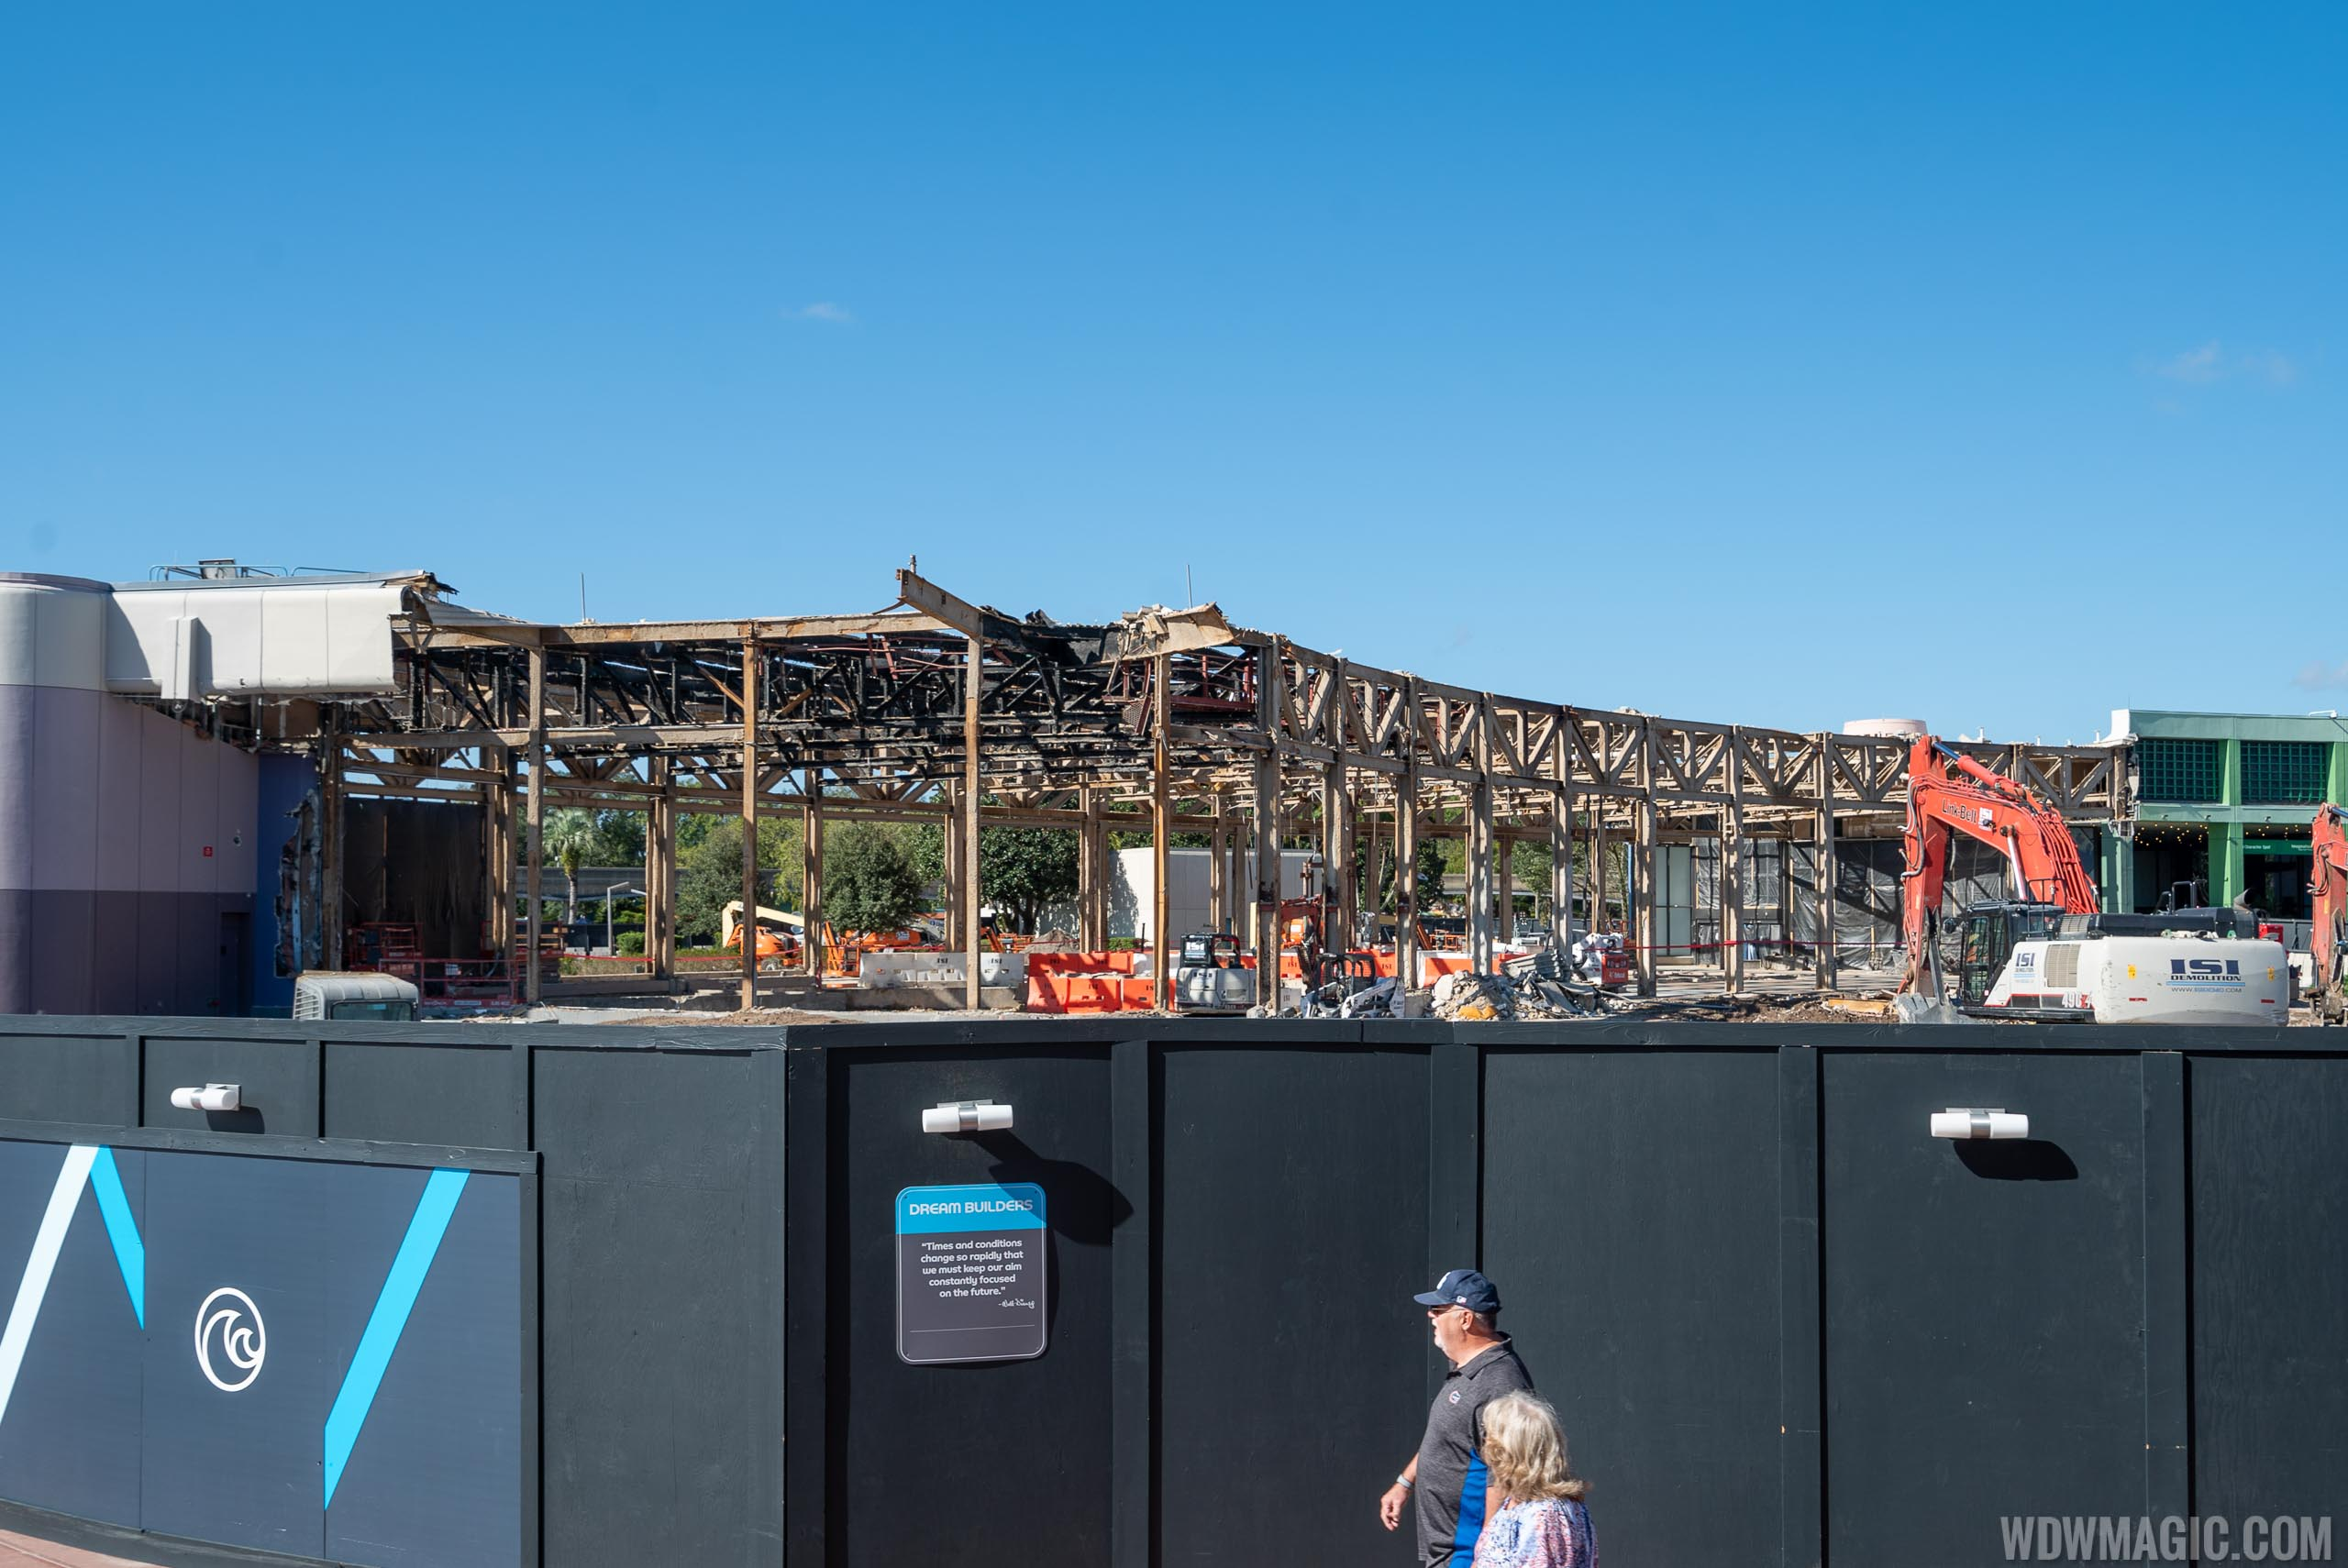 Epcot Future World West Demolition and Construction Walls - December 17 2019